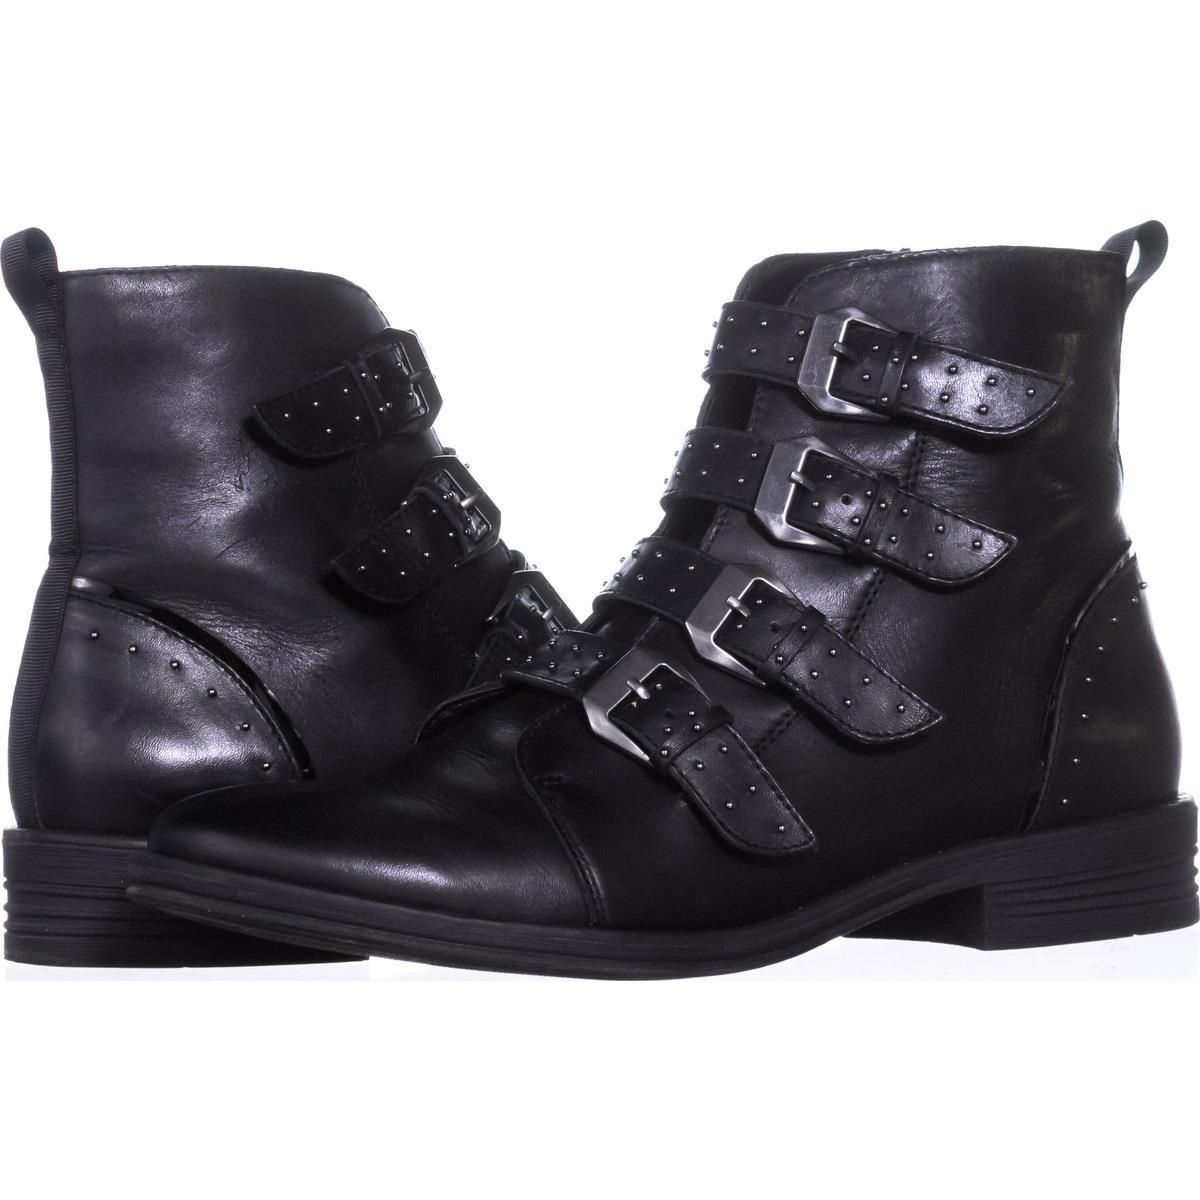 1a8620d1bc9 Steve Madden Pursue Buckle Booties  stevemadden  ankleboots  boots  booties   blackboots  flat  shoes  retail  shopping  style  trend  love  fashion    ...